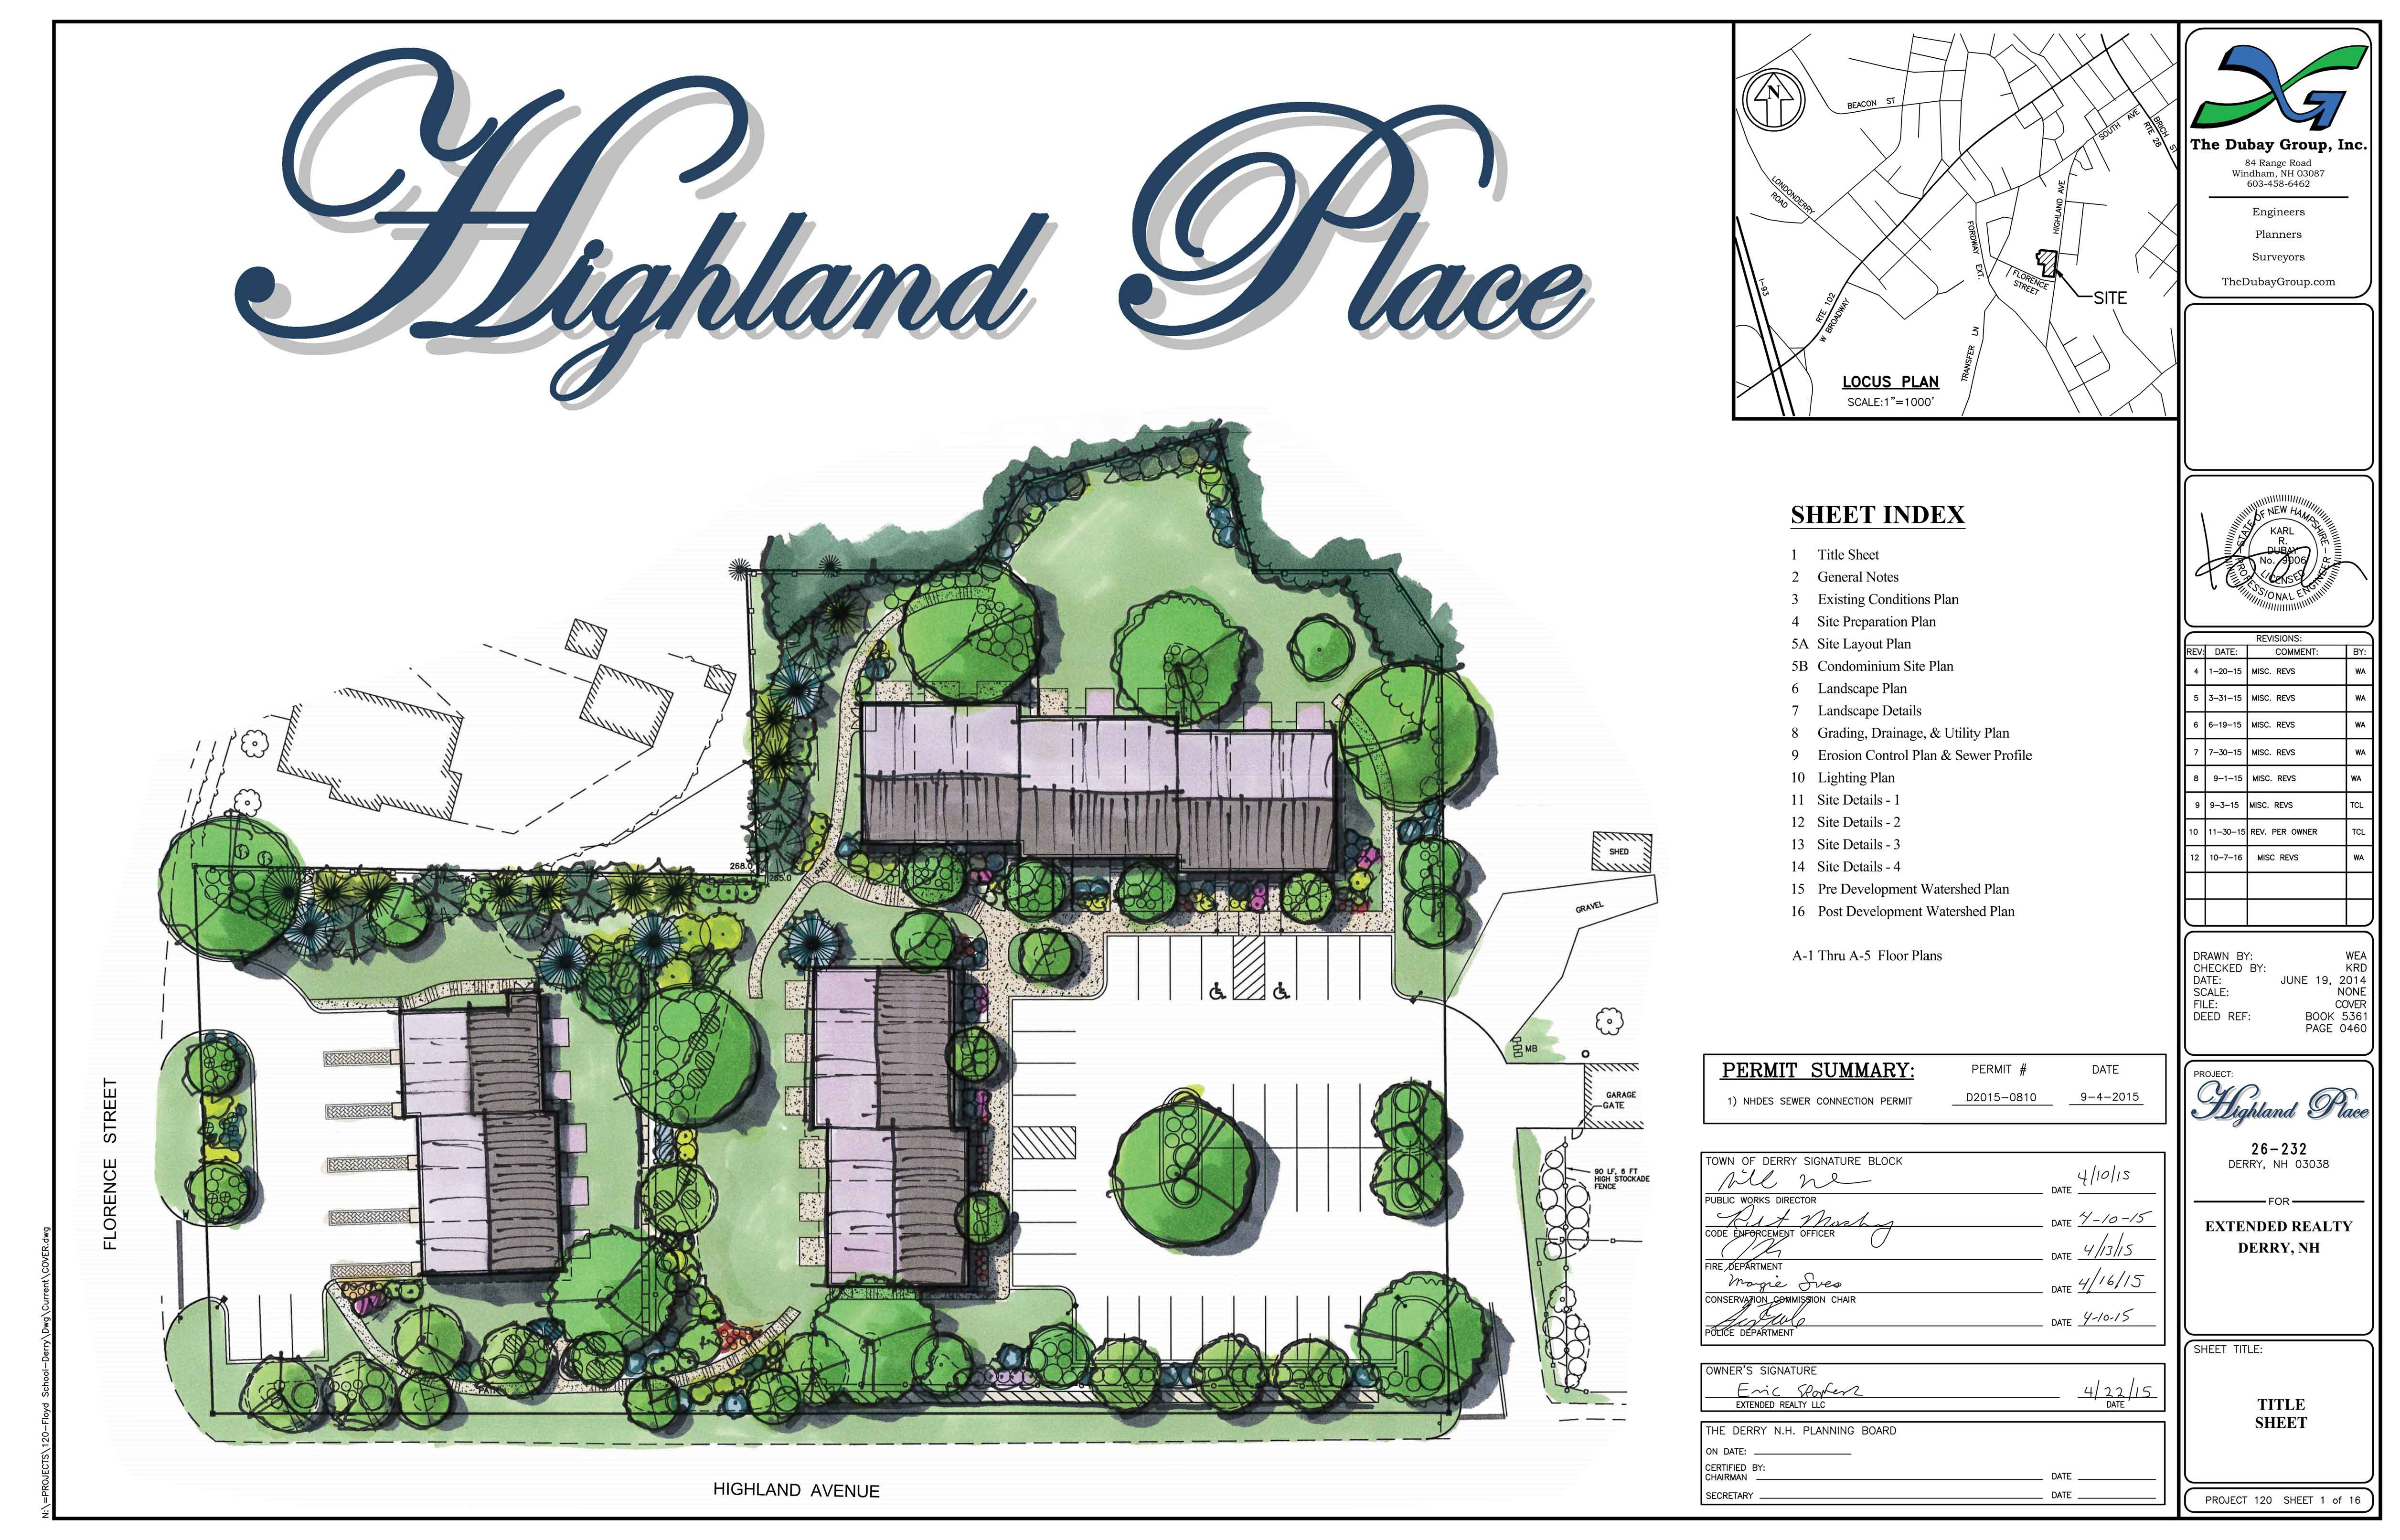 Highland Place - Derry, NH